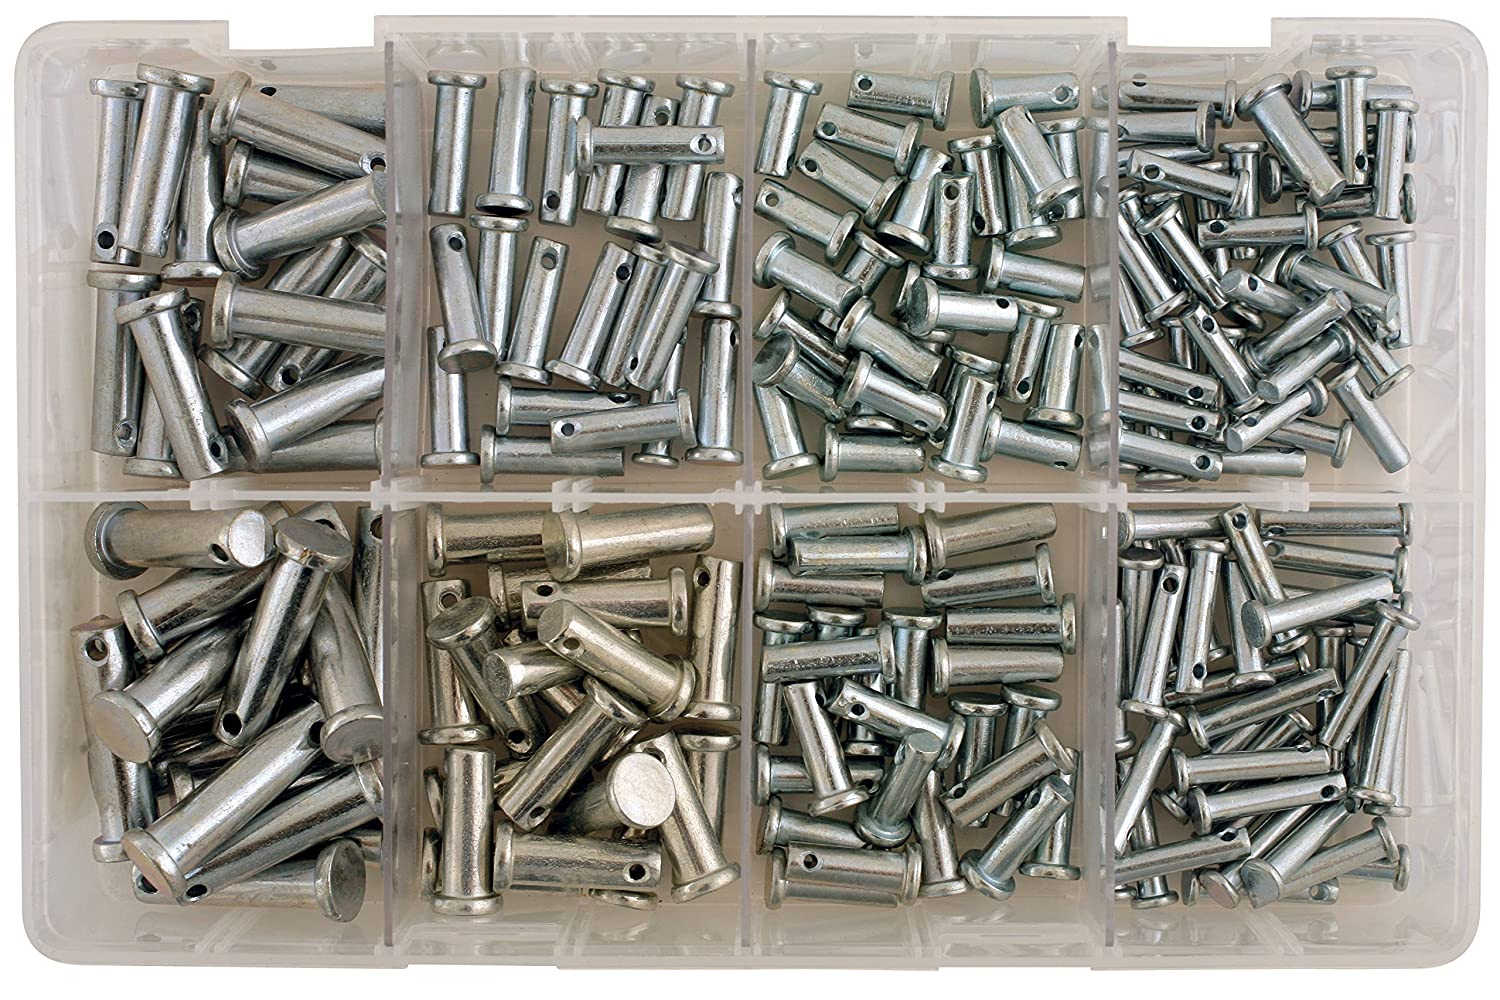 CONNECT 35013 Assorted Clevis Pins AutoMotion Factors Limited